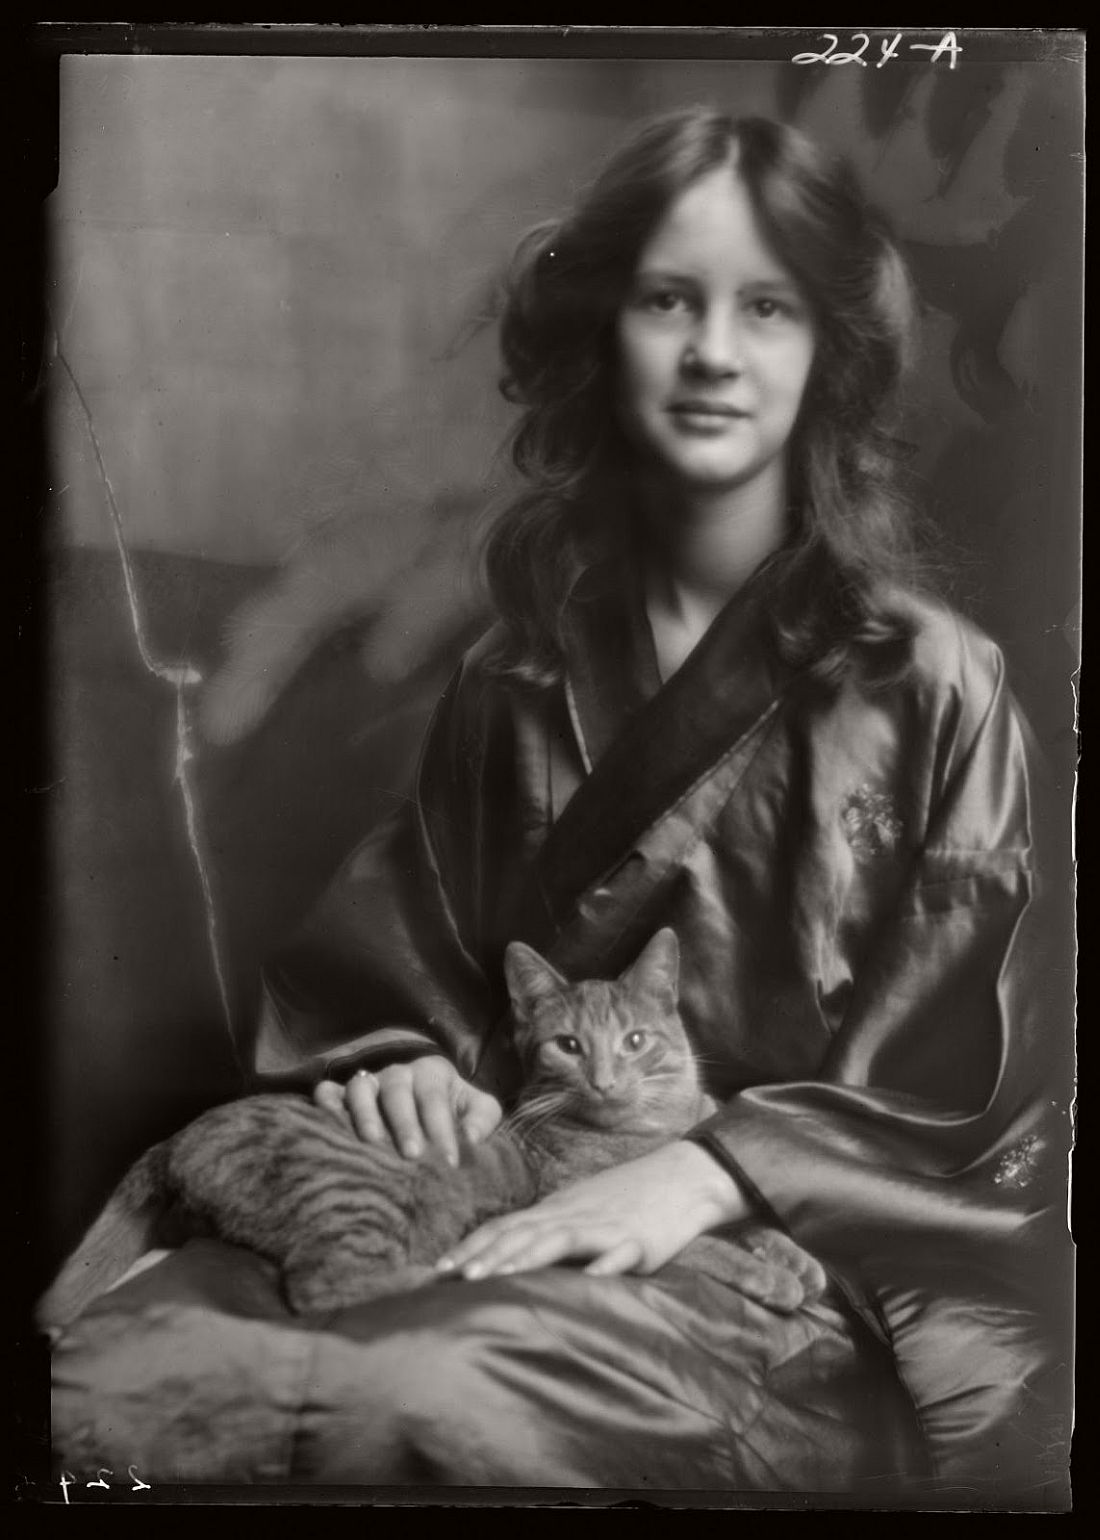 arnold-genthe-1910s-vintage-studio-portraits-of-girls-with-cat-10